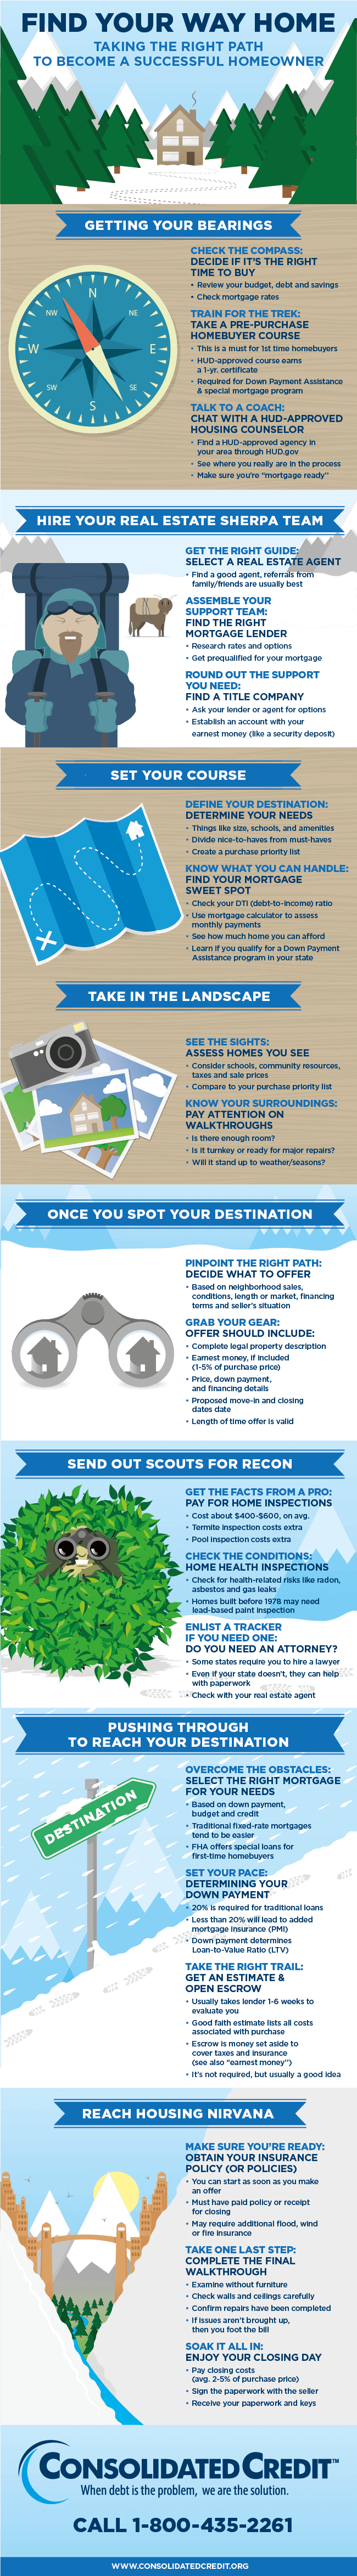 Infographic goes step by step through the home buying process